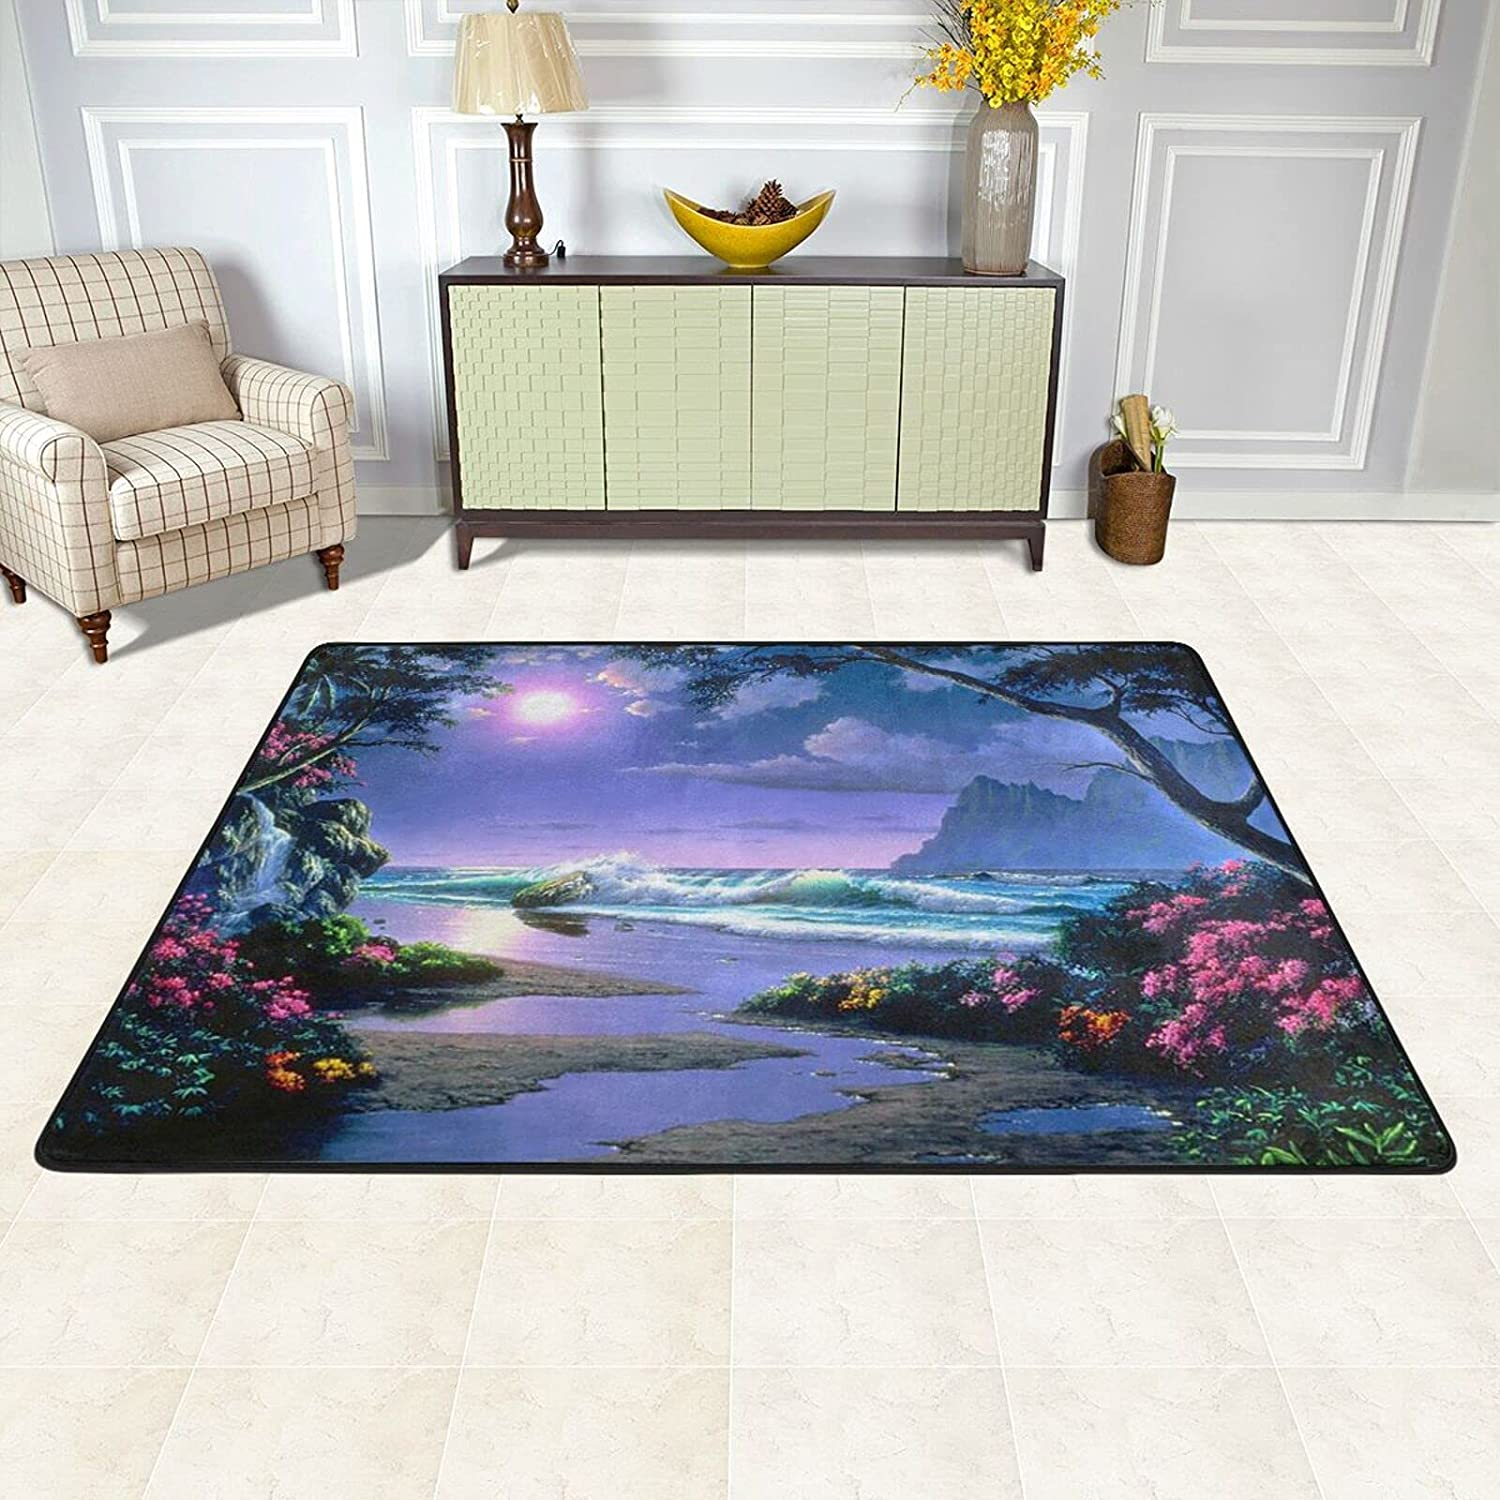 Area Rugs Max 89% OFF Portland Mall Pad for Bedroom Living Moon Room S Paradise Beautiful